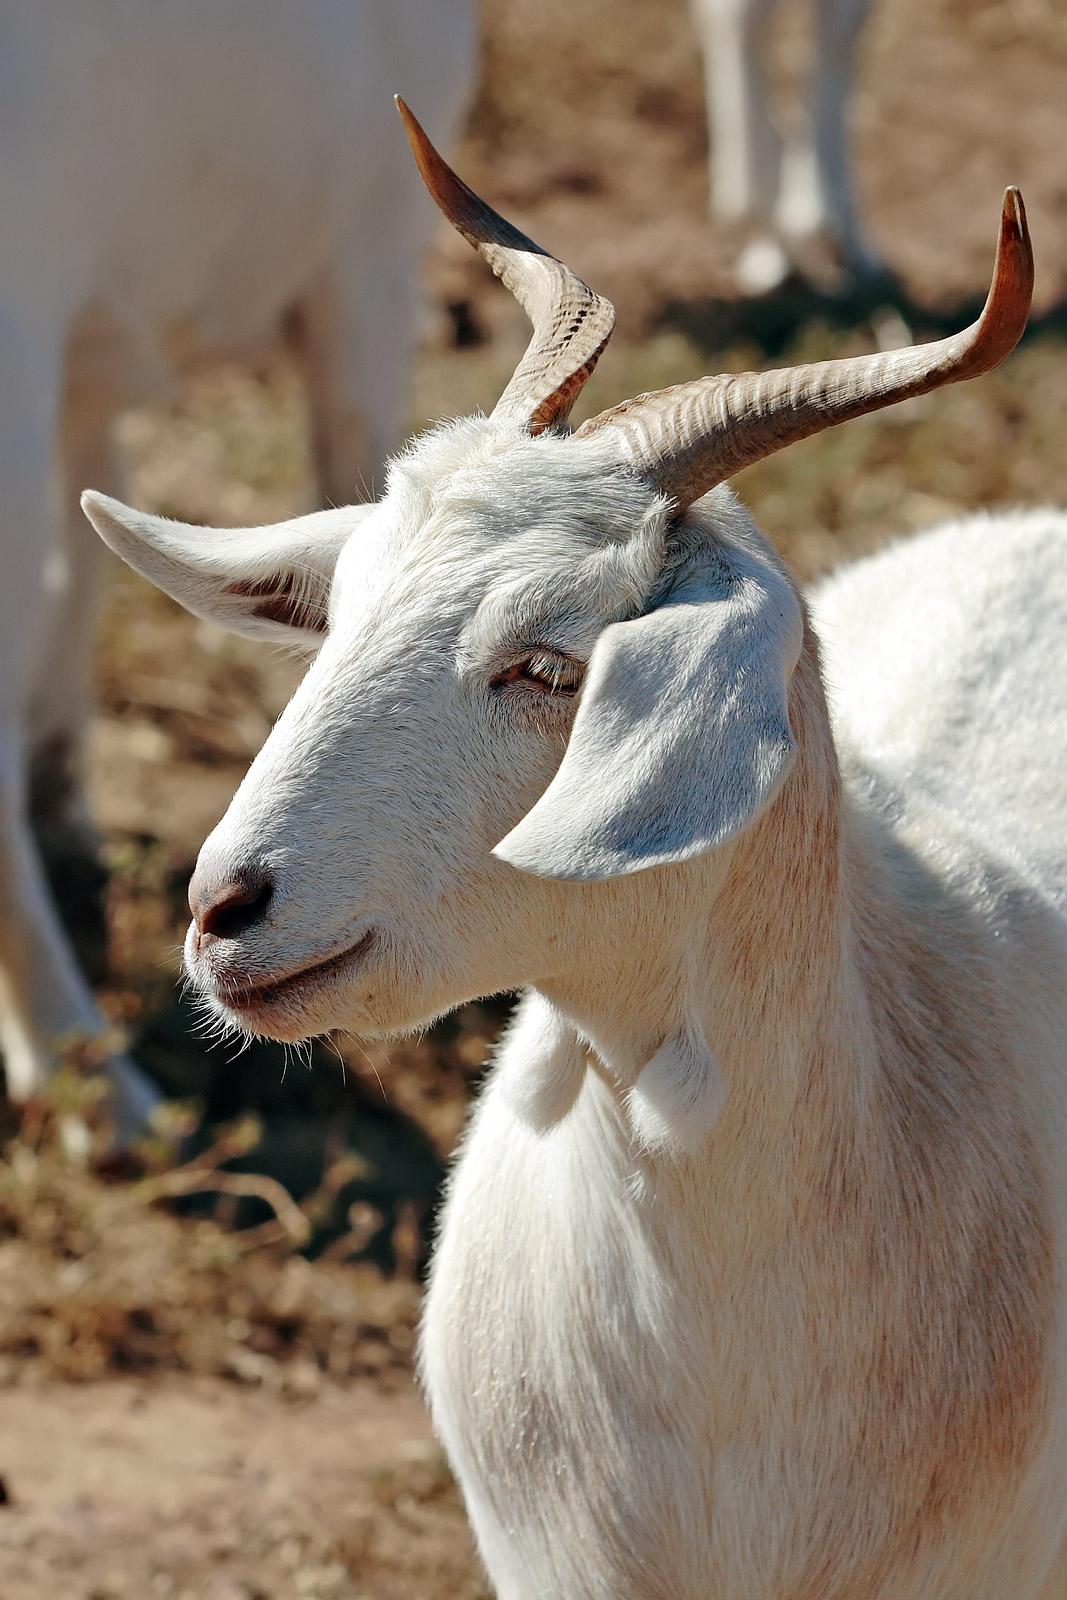 A Goat S Journey Over Life S: File:Goat With Unusual Horns.jpg